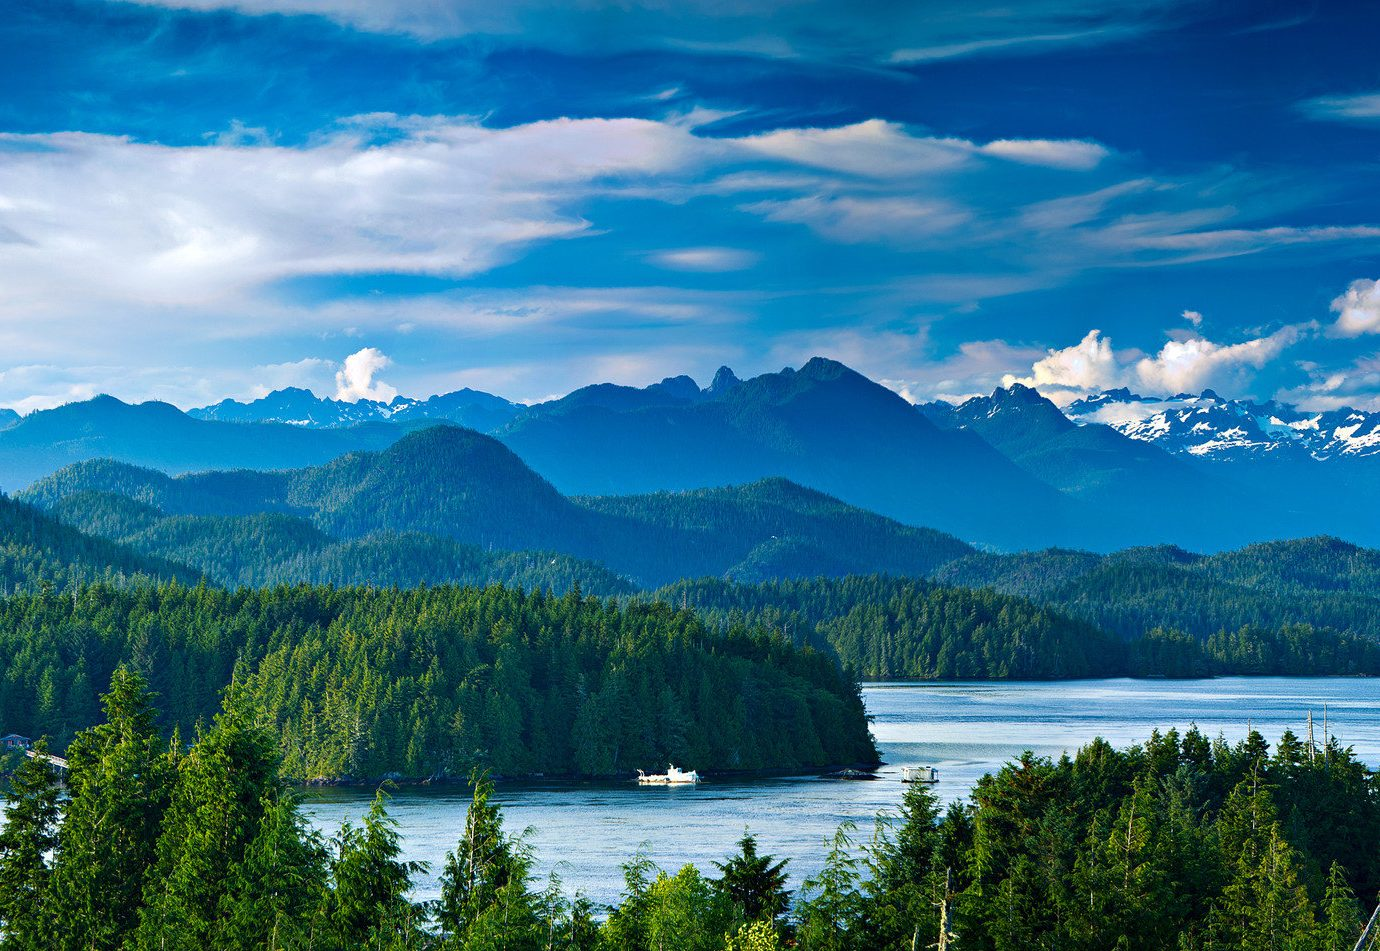 National Parks Outdoors + Adventure Trip Ideas water mountain Lake tree sky outdoor Nature mount scenery wilderness River Boat nature reserve national park crater lake highland water resources mountain range hill station daytime fjord reflection biome glacial lake cloud computer wallpaper landscape background fell cumulus Forest sound watercourse glacial landform bank surrounded beautiful overlooking pond clouds distance land hillside